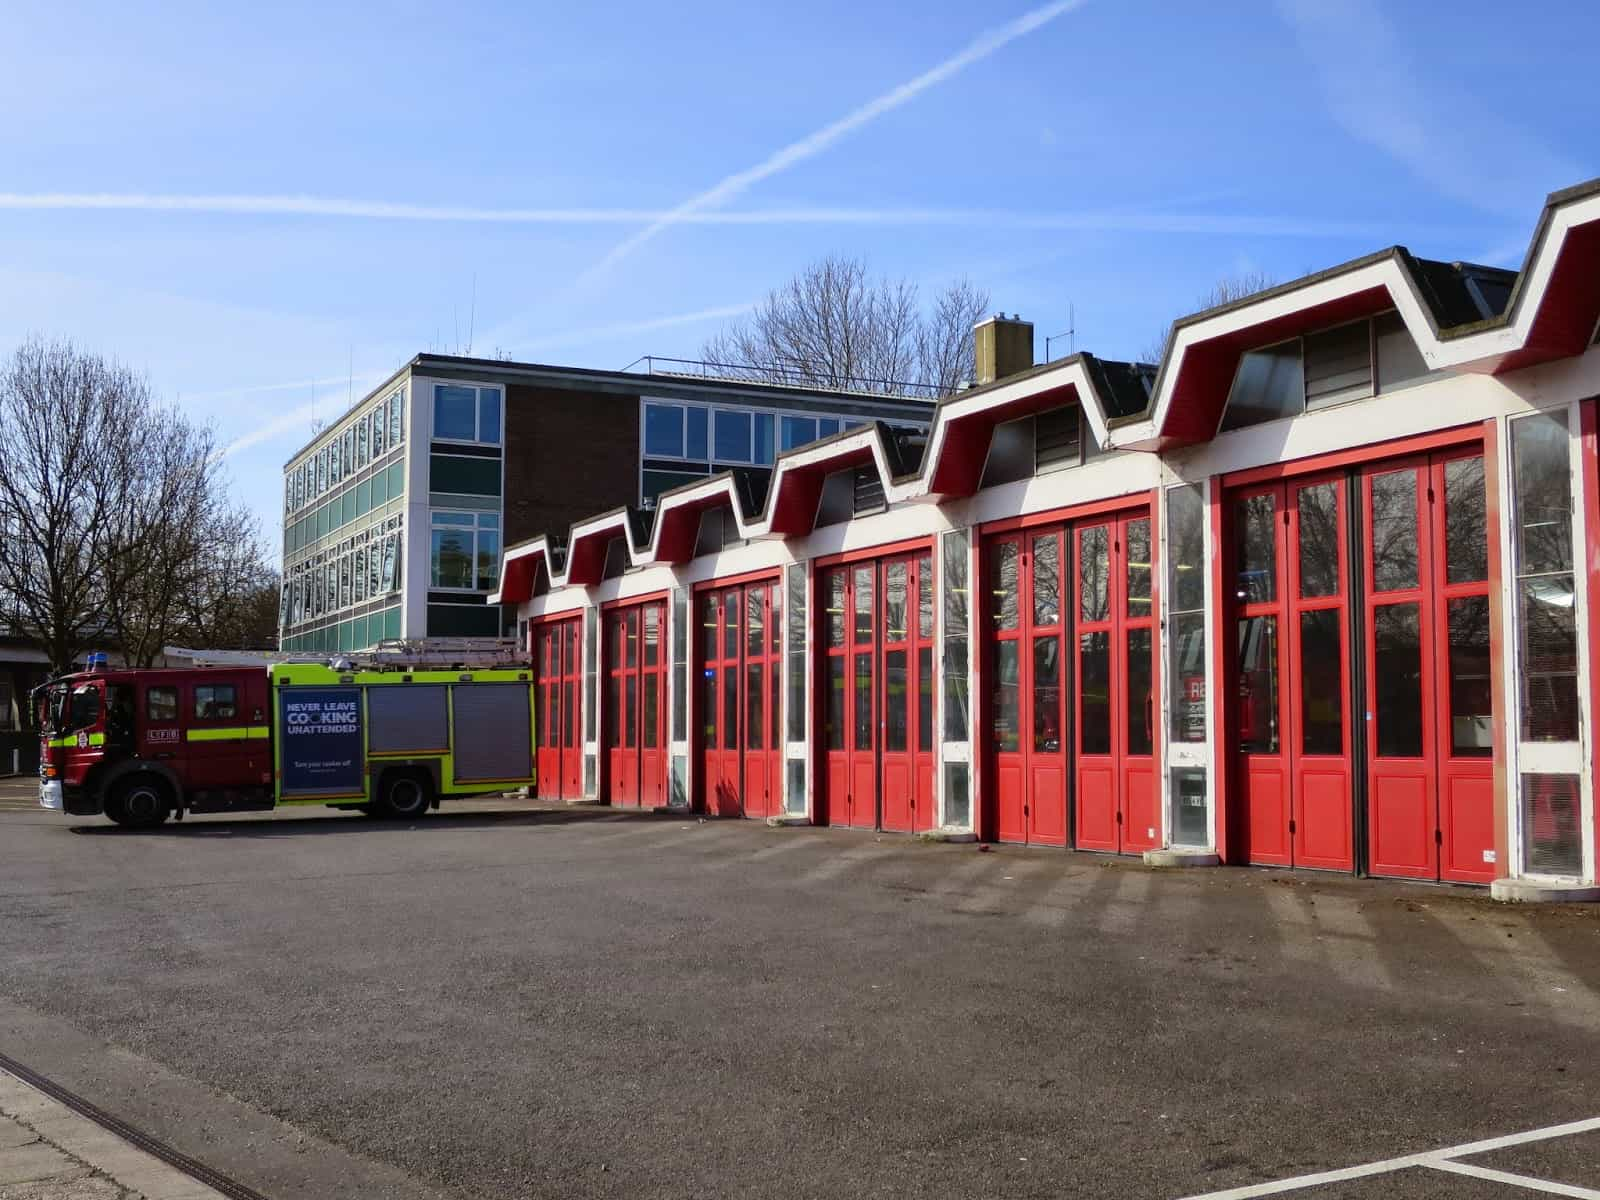 Croydon fire station - Croydon Fire Safety - expert fire safety services in croydon